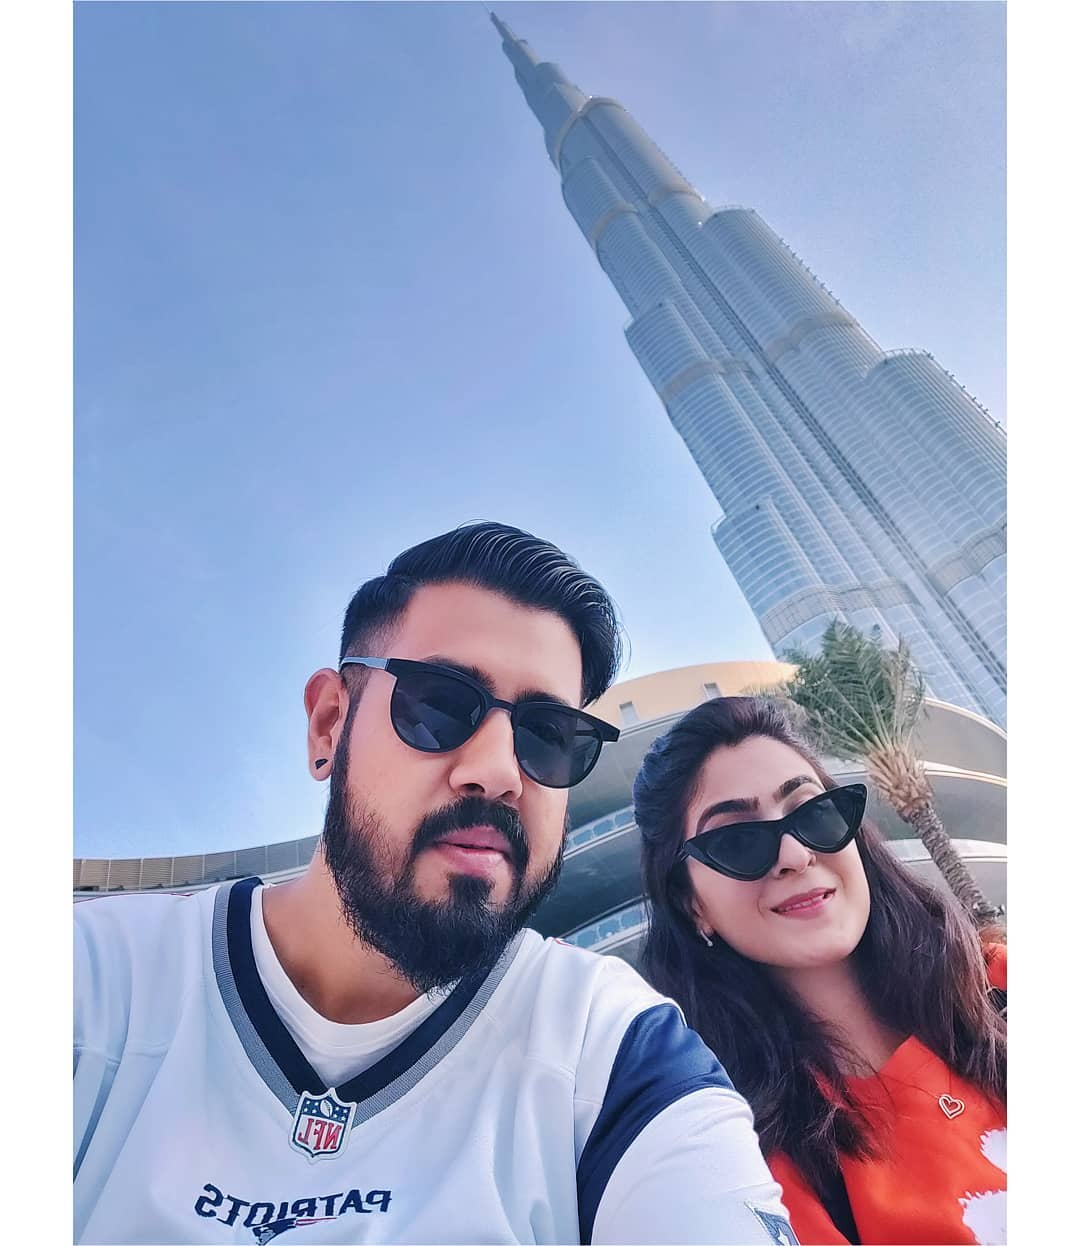 Awesome New Photos of Famous Youtuber Couple Rida and Ghanzfar of Bekaar Films